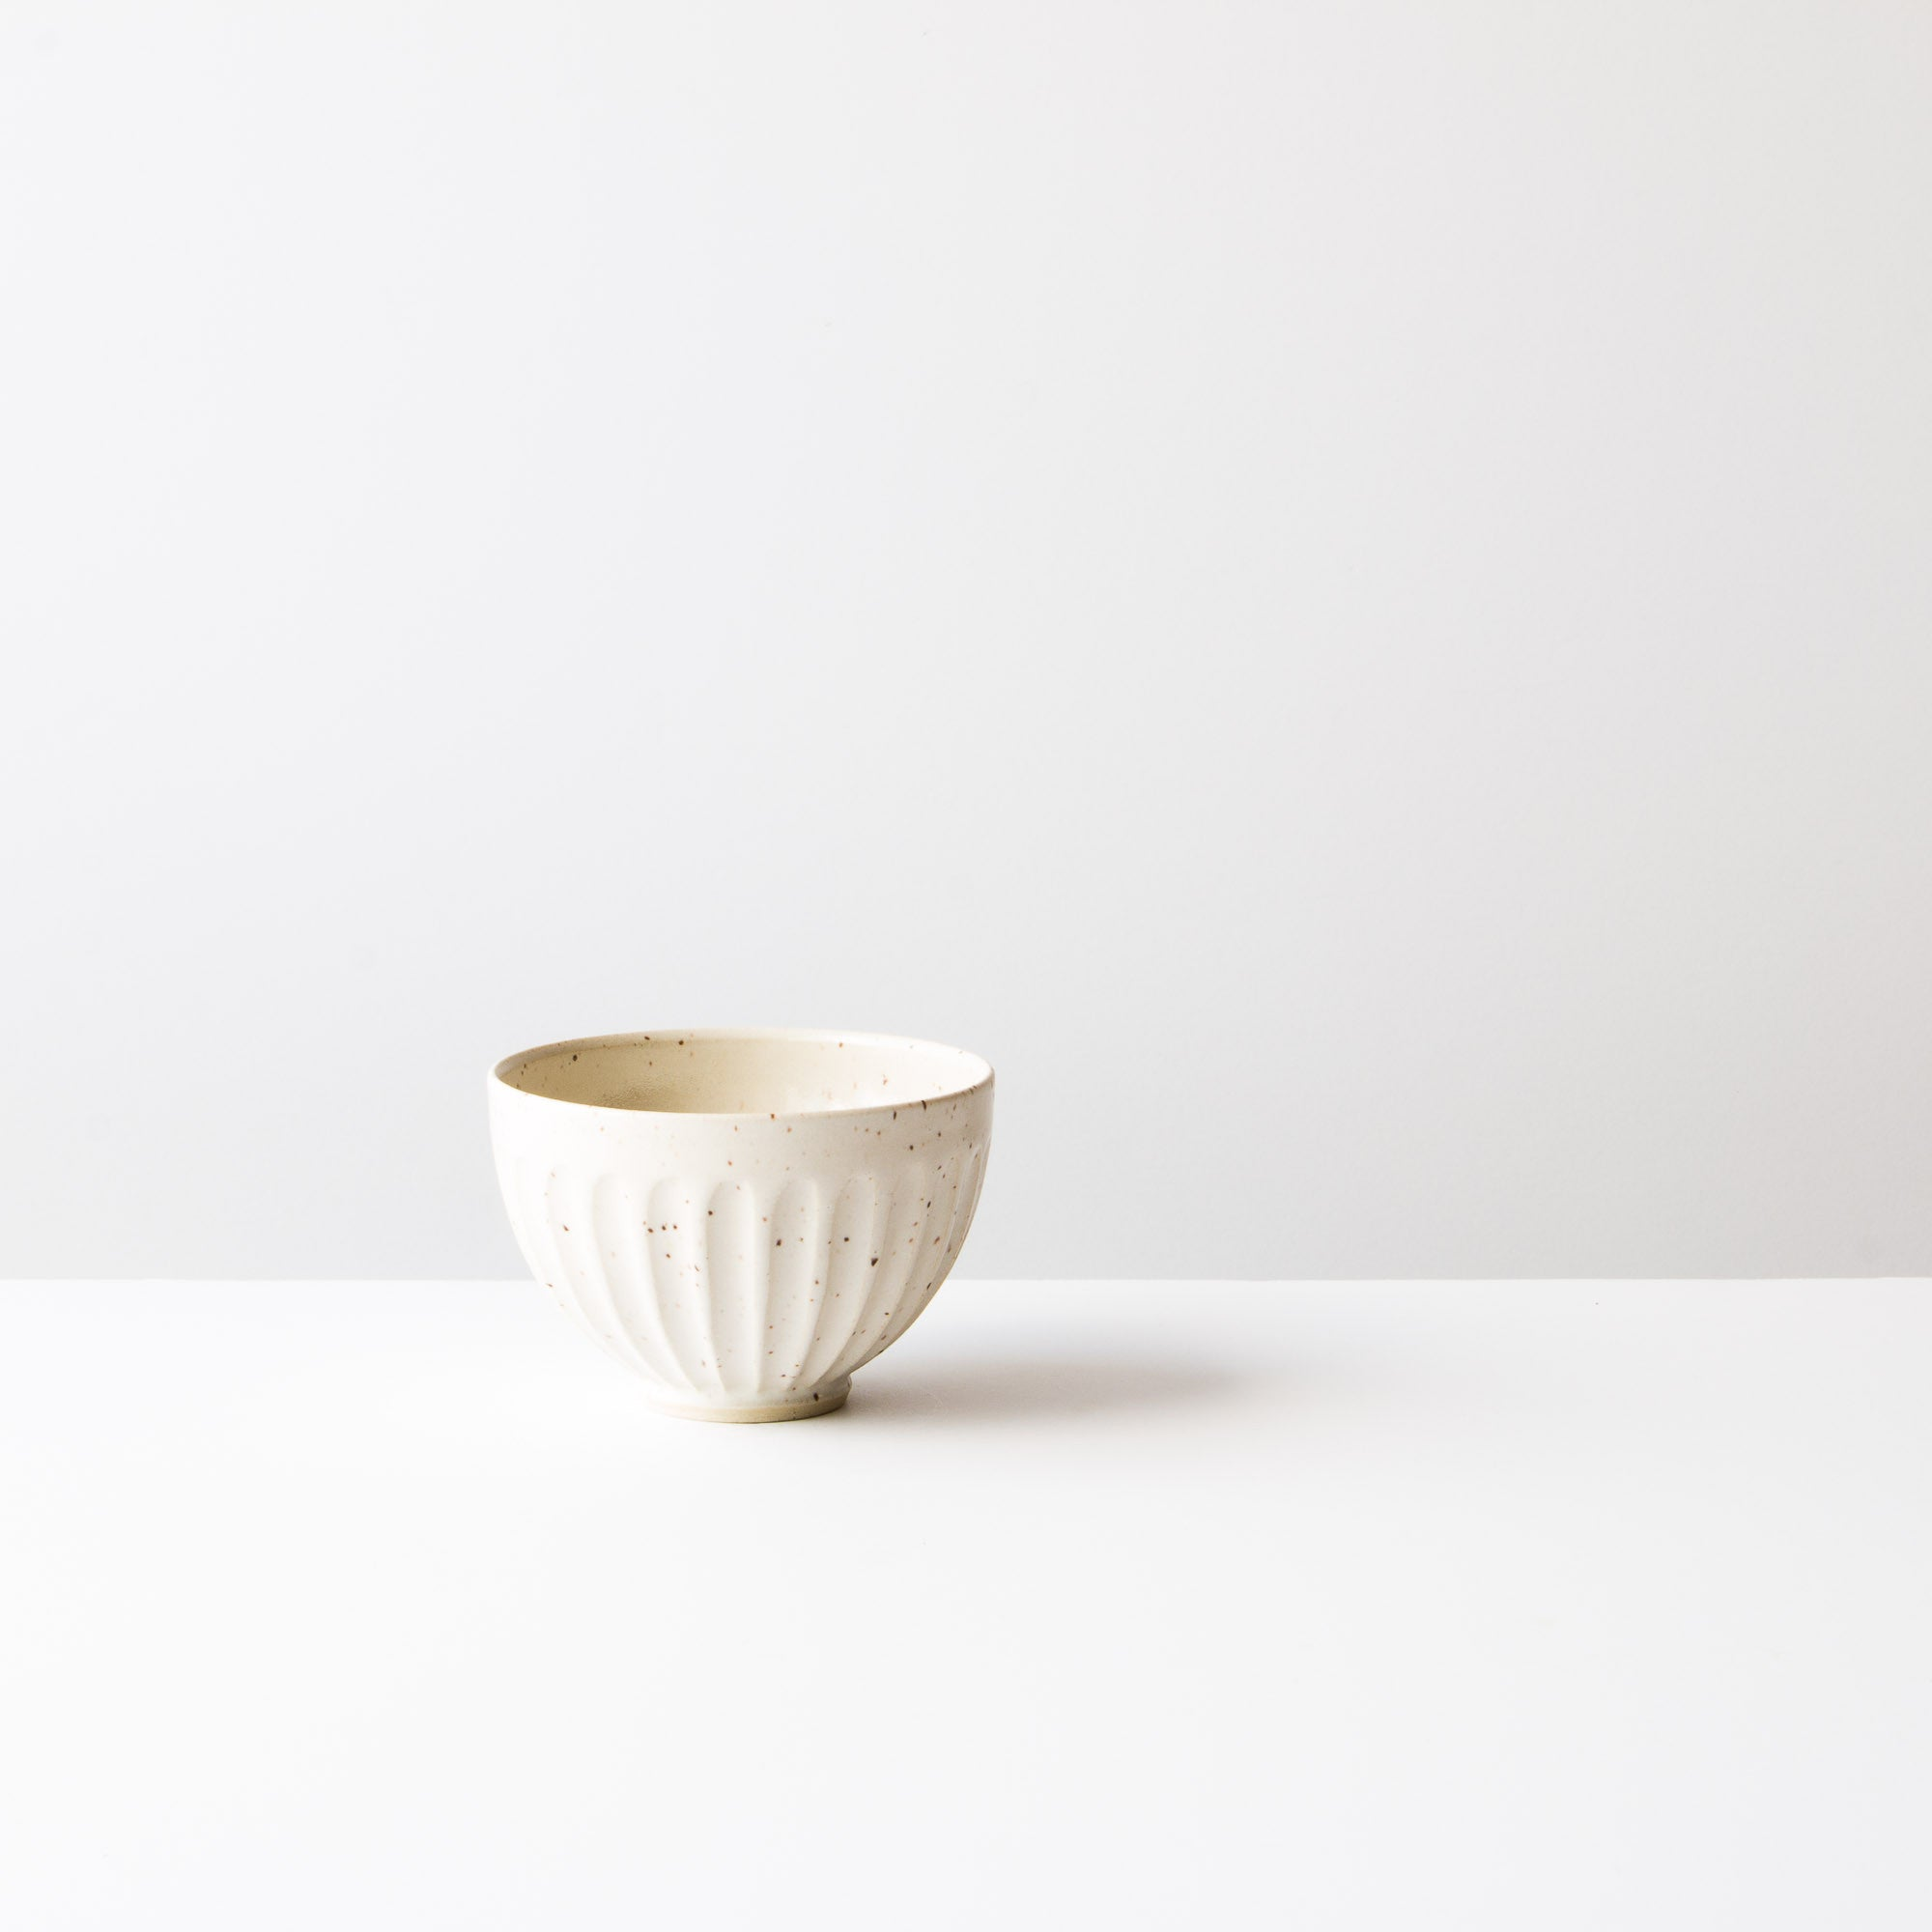 Speckled Off-White Colour - Handmade Ceramic Cappuccino Coffee Cup - Groove Pattern - Chic & Basta